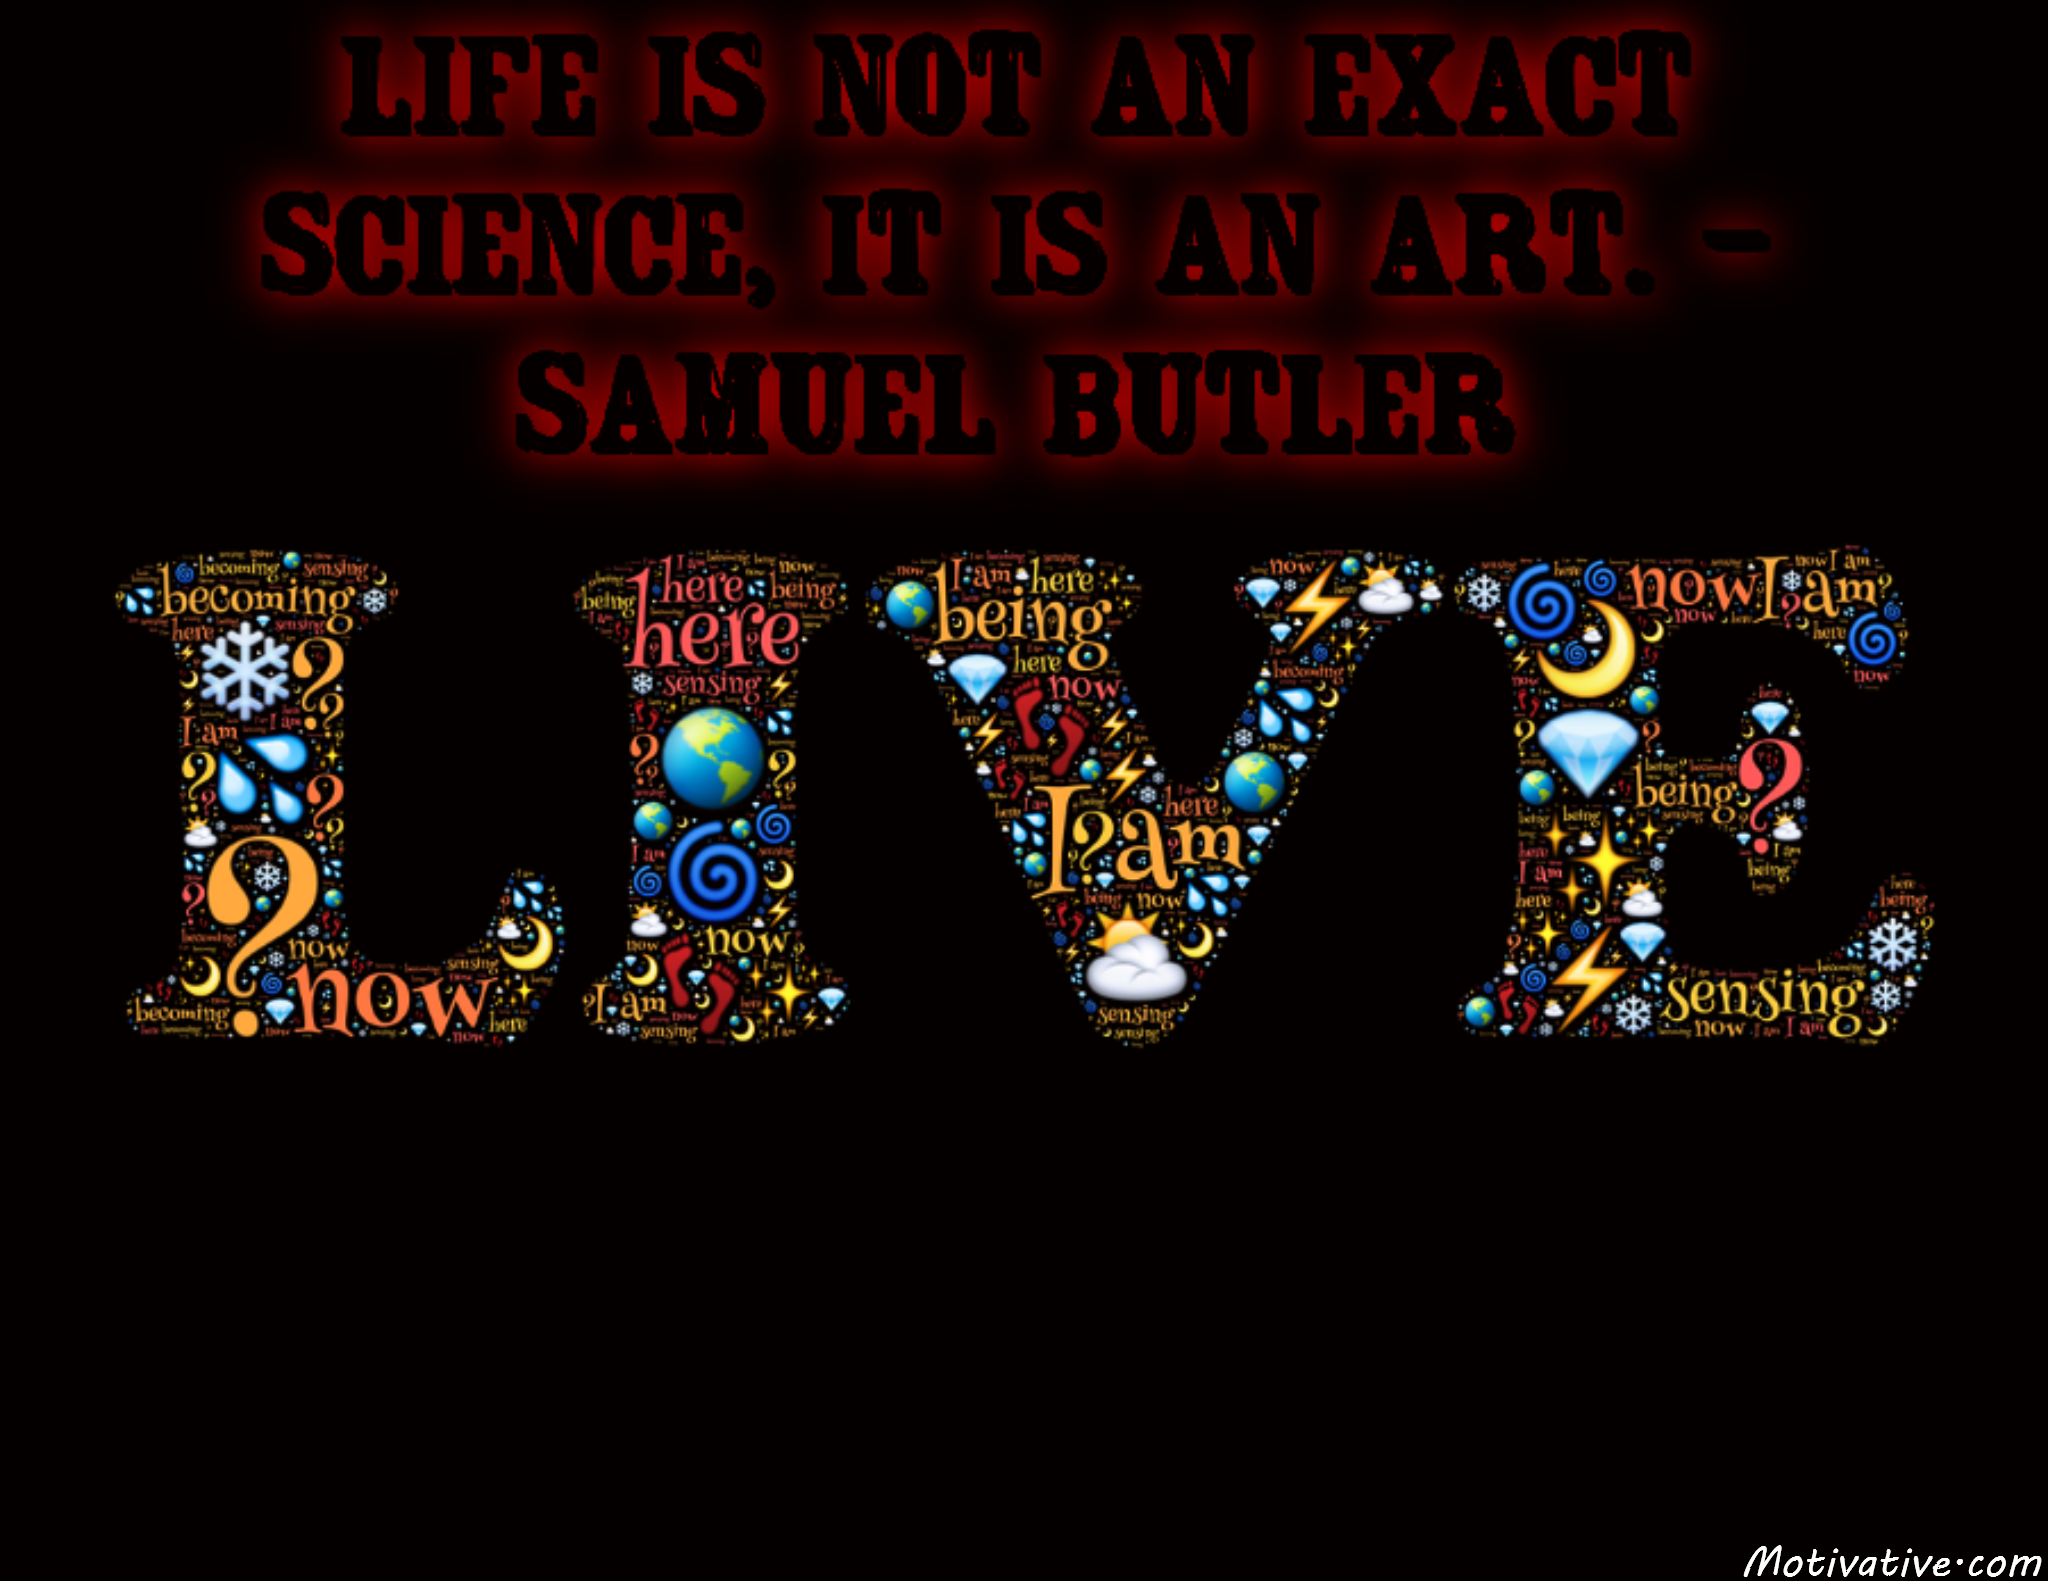 Life is not an exact science, it is an art. – Samuel Butler